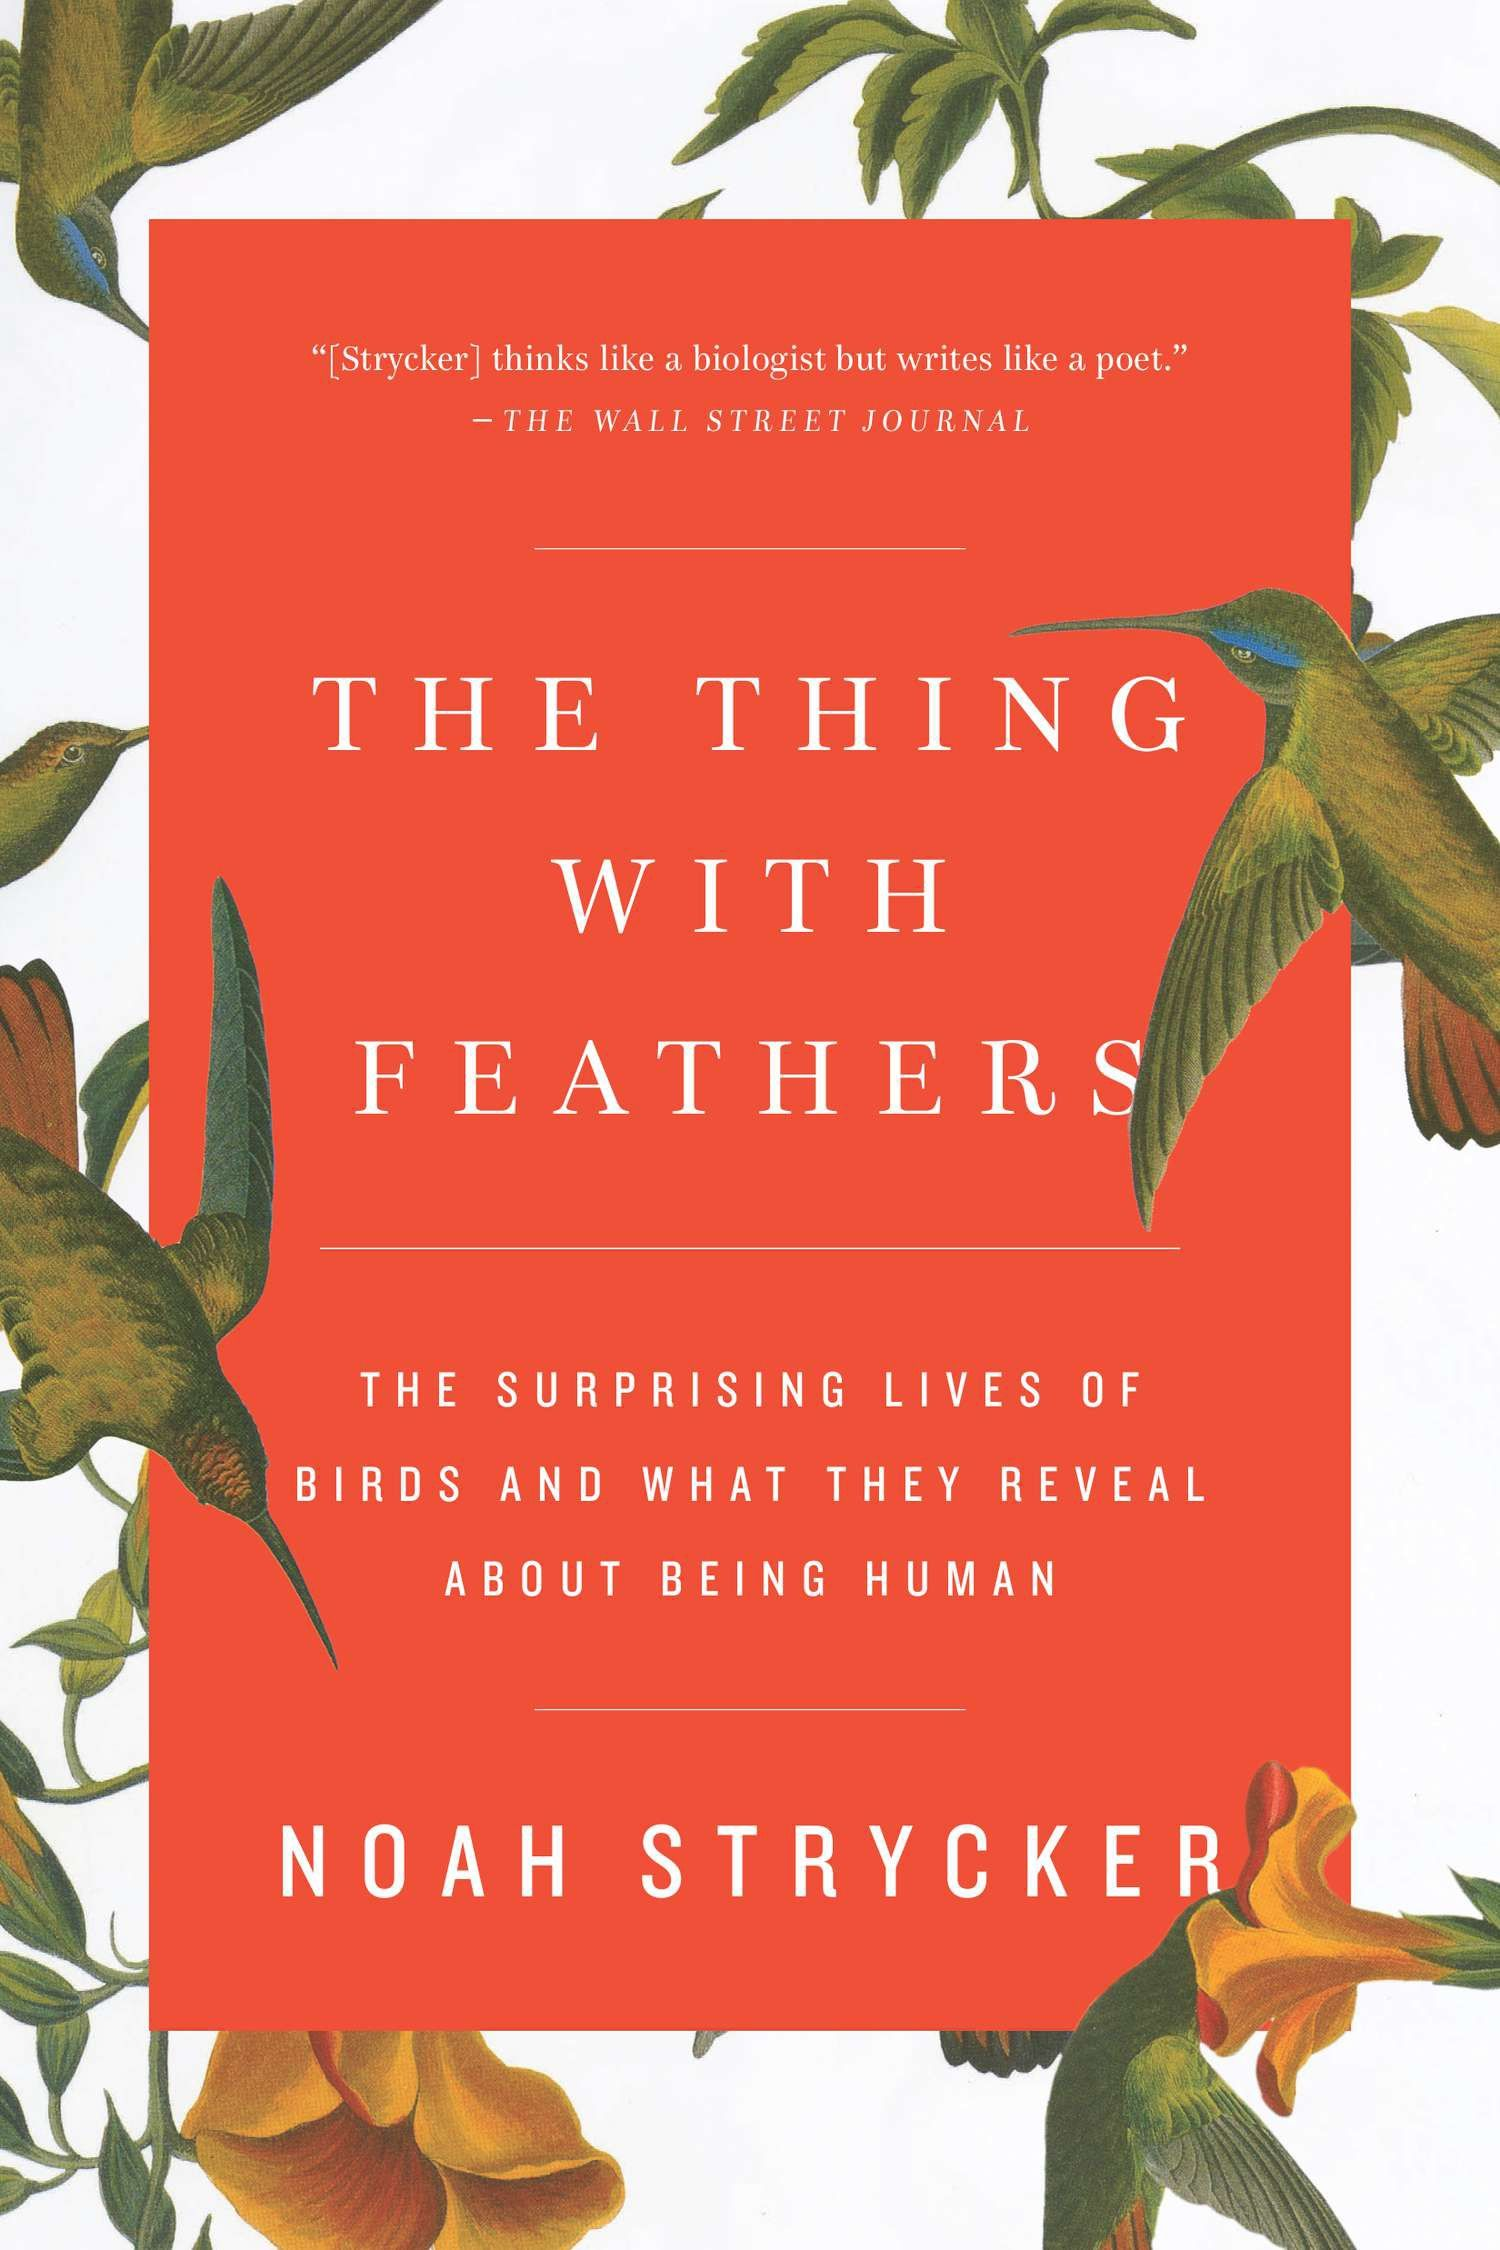 The Thing with Feathers by Noah Strycker 9781594633416